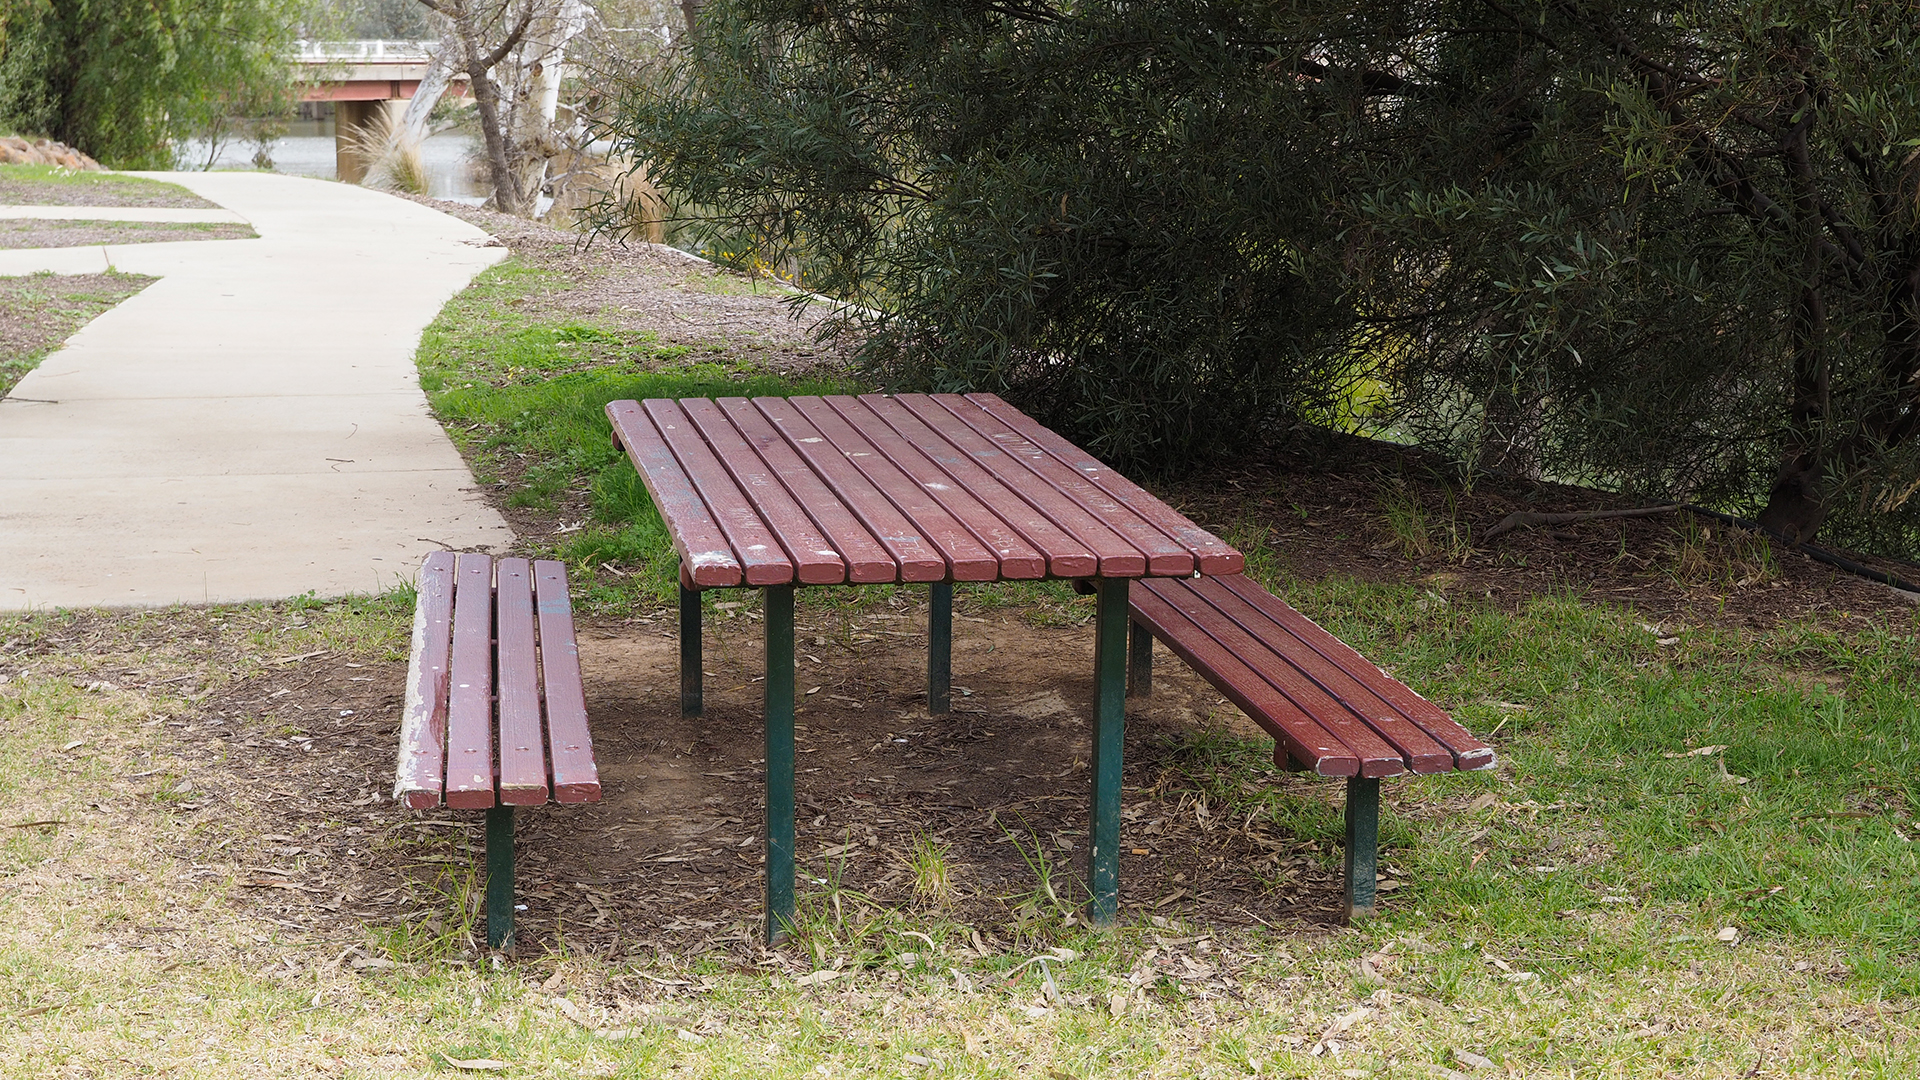 Picnic tables are accessible